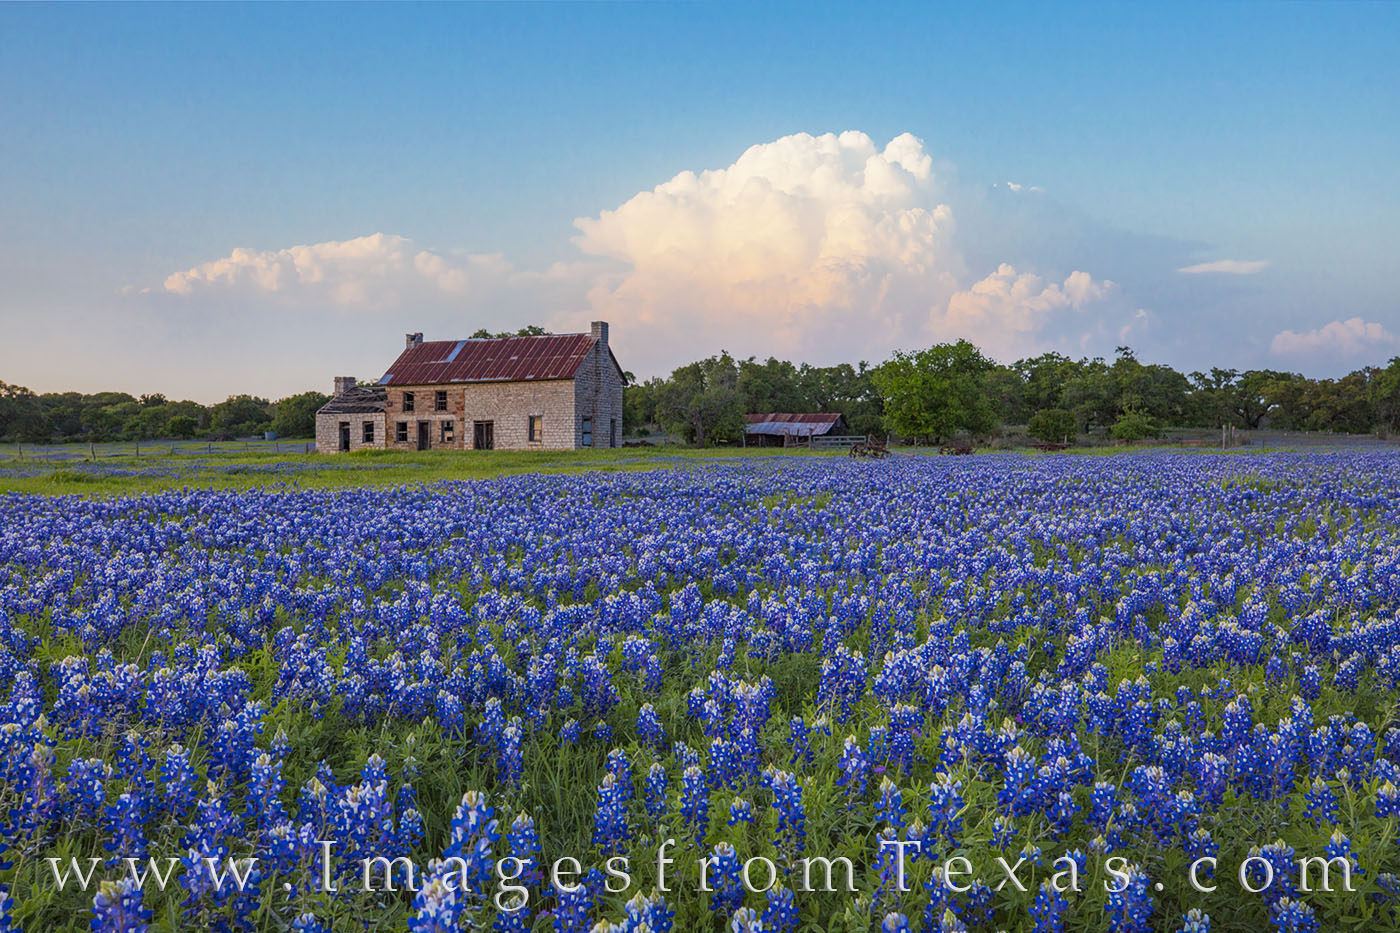 thunderheads, storms, bluebonnets, bluebonnet house, marble falls, wildlfowers, texas wildflowers, texas bluebonnets, bluebonnet images, photo